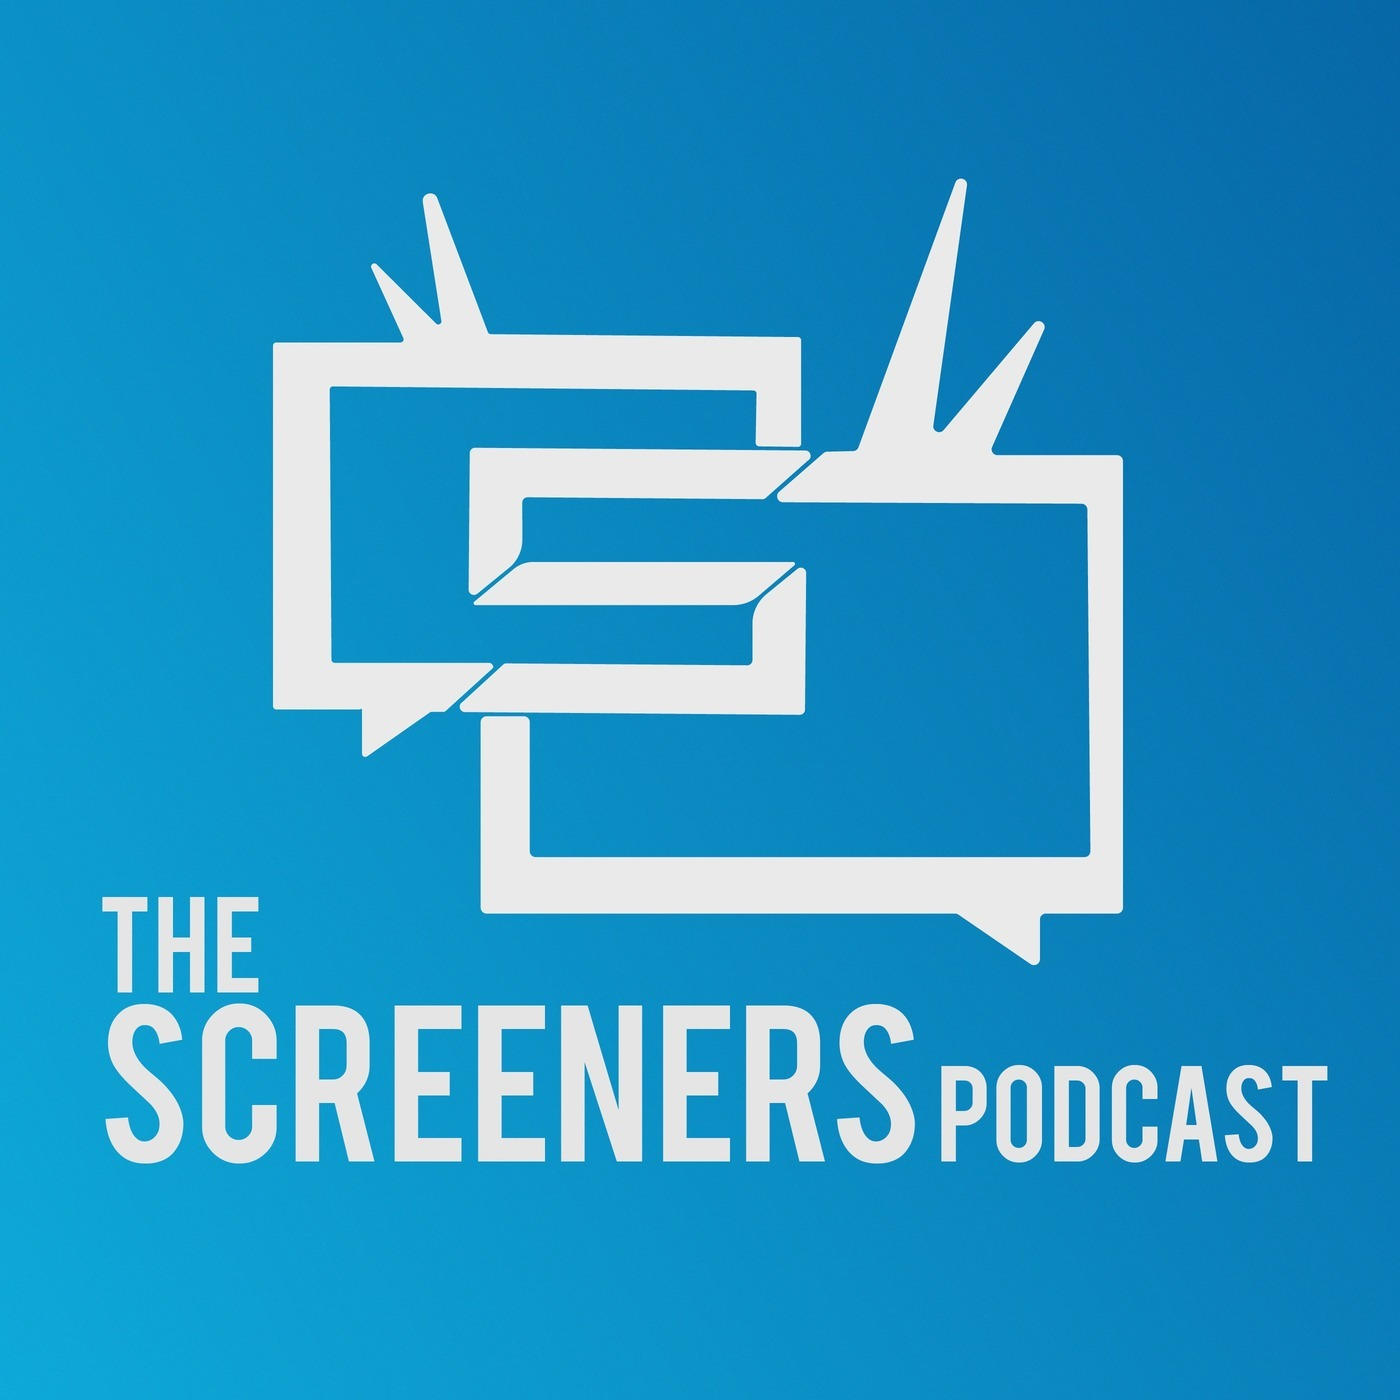 Screeners Podcast: Frozen 2 and A Beautiful Day in the Neighborhood